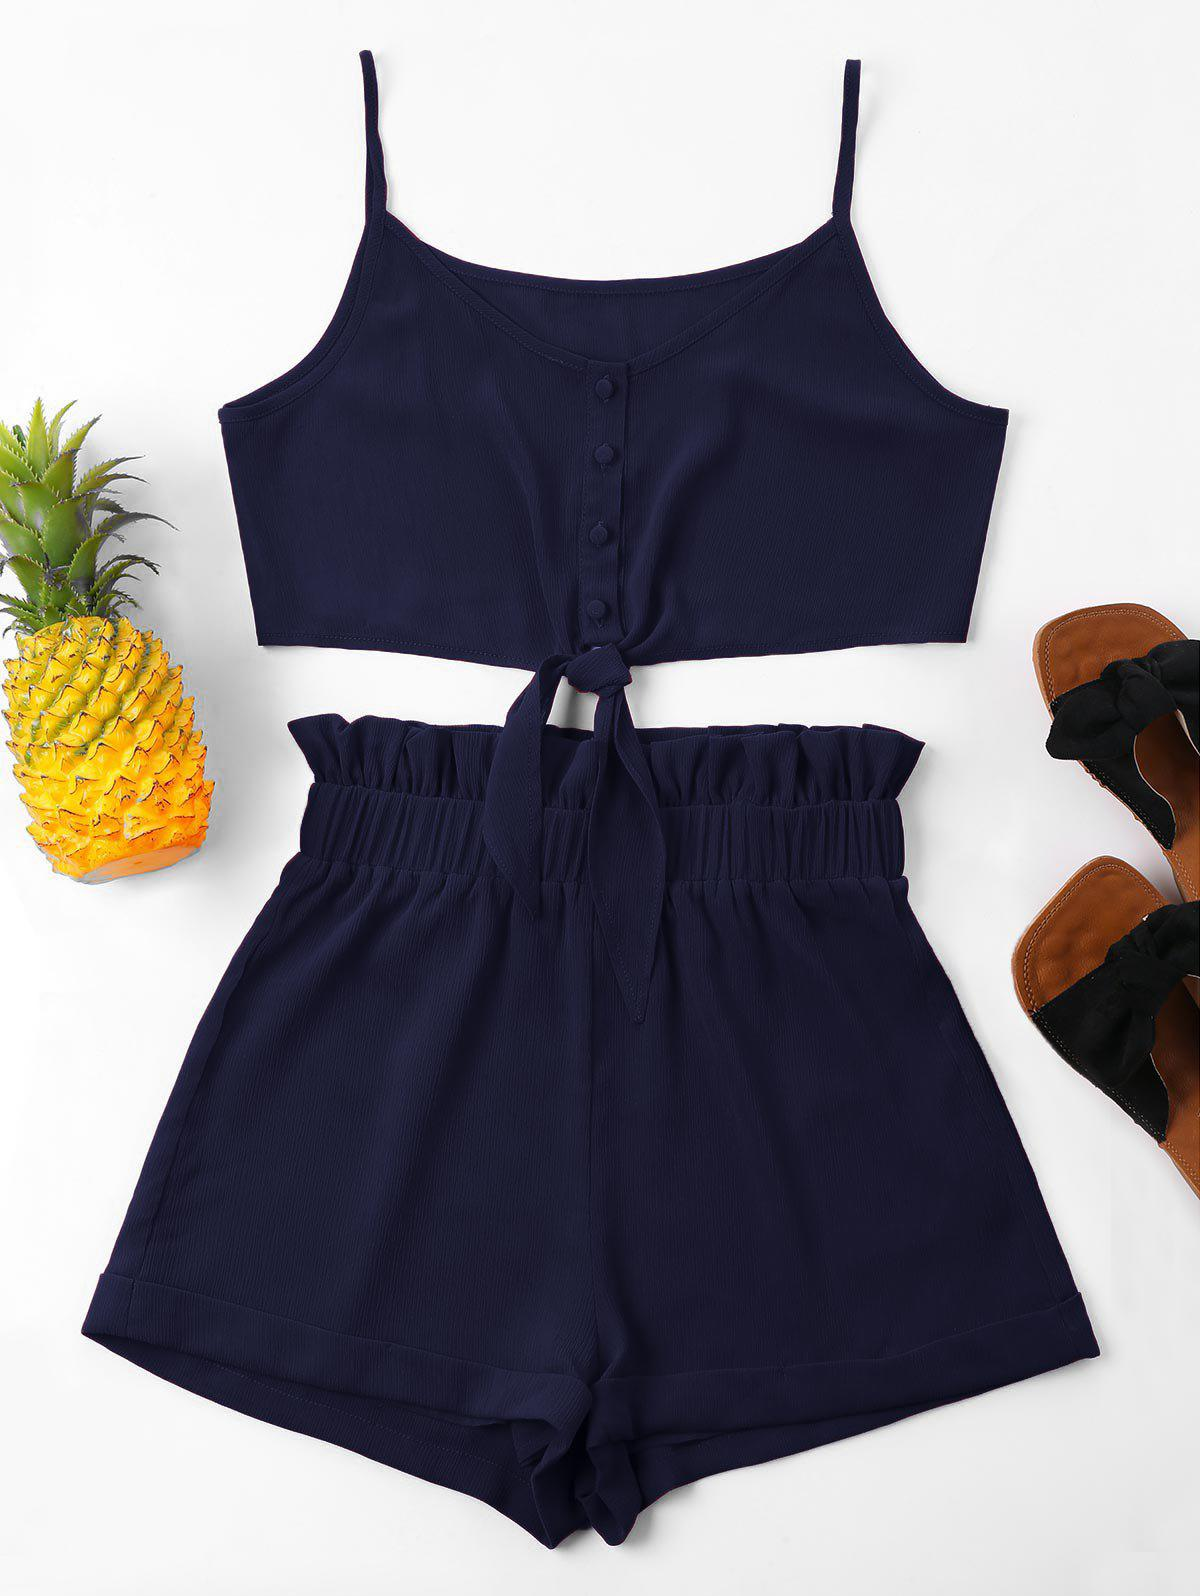 High Waisted Knot Cami Shorts Set